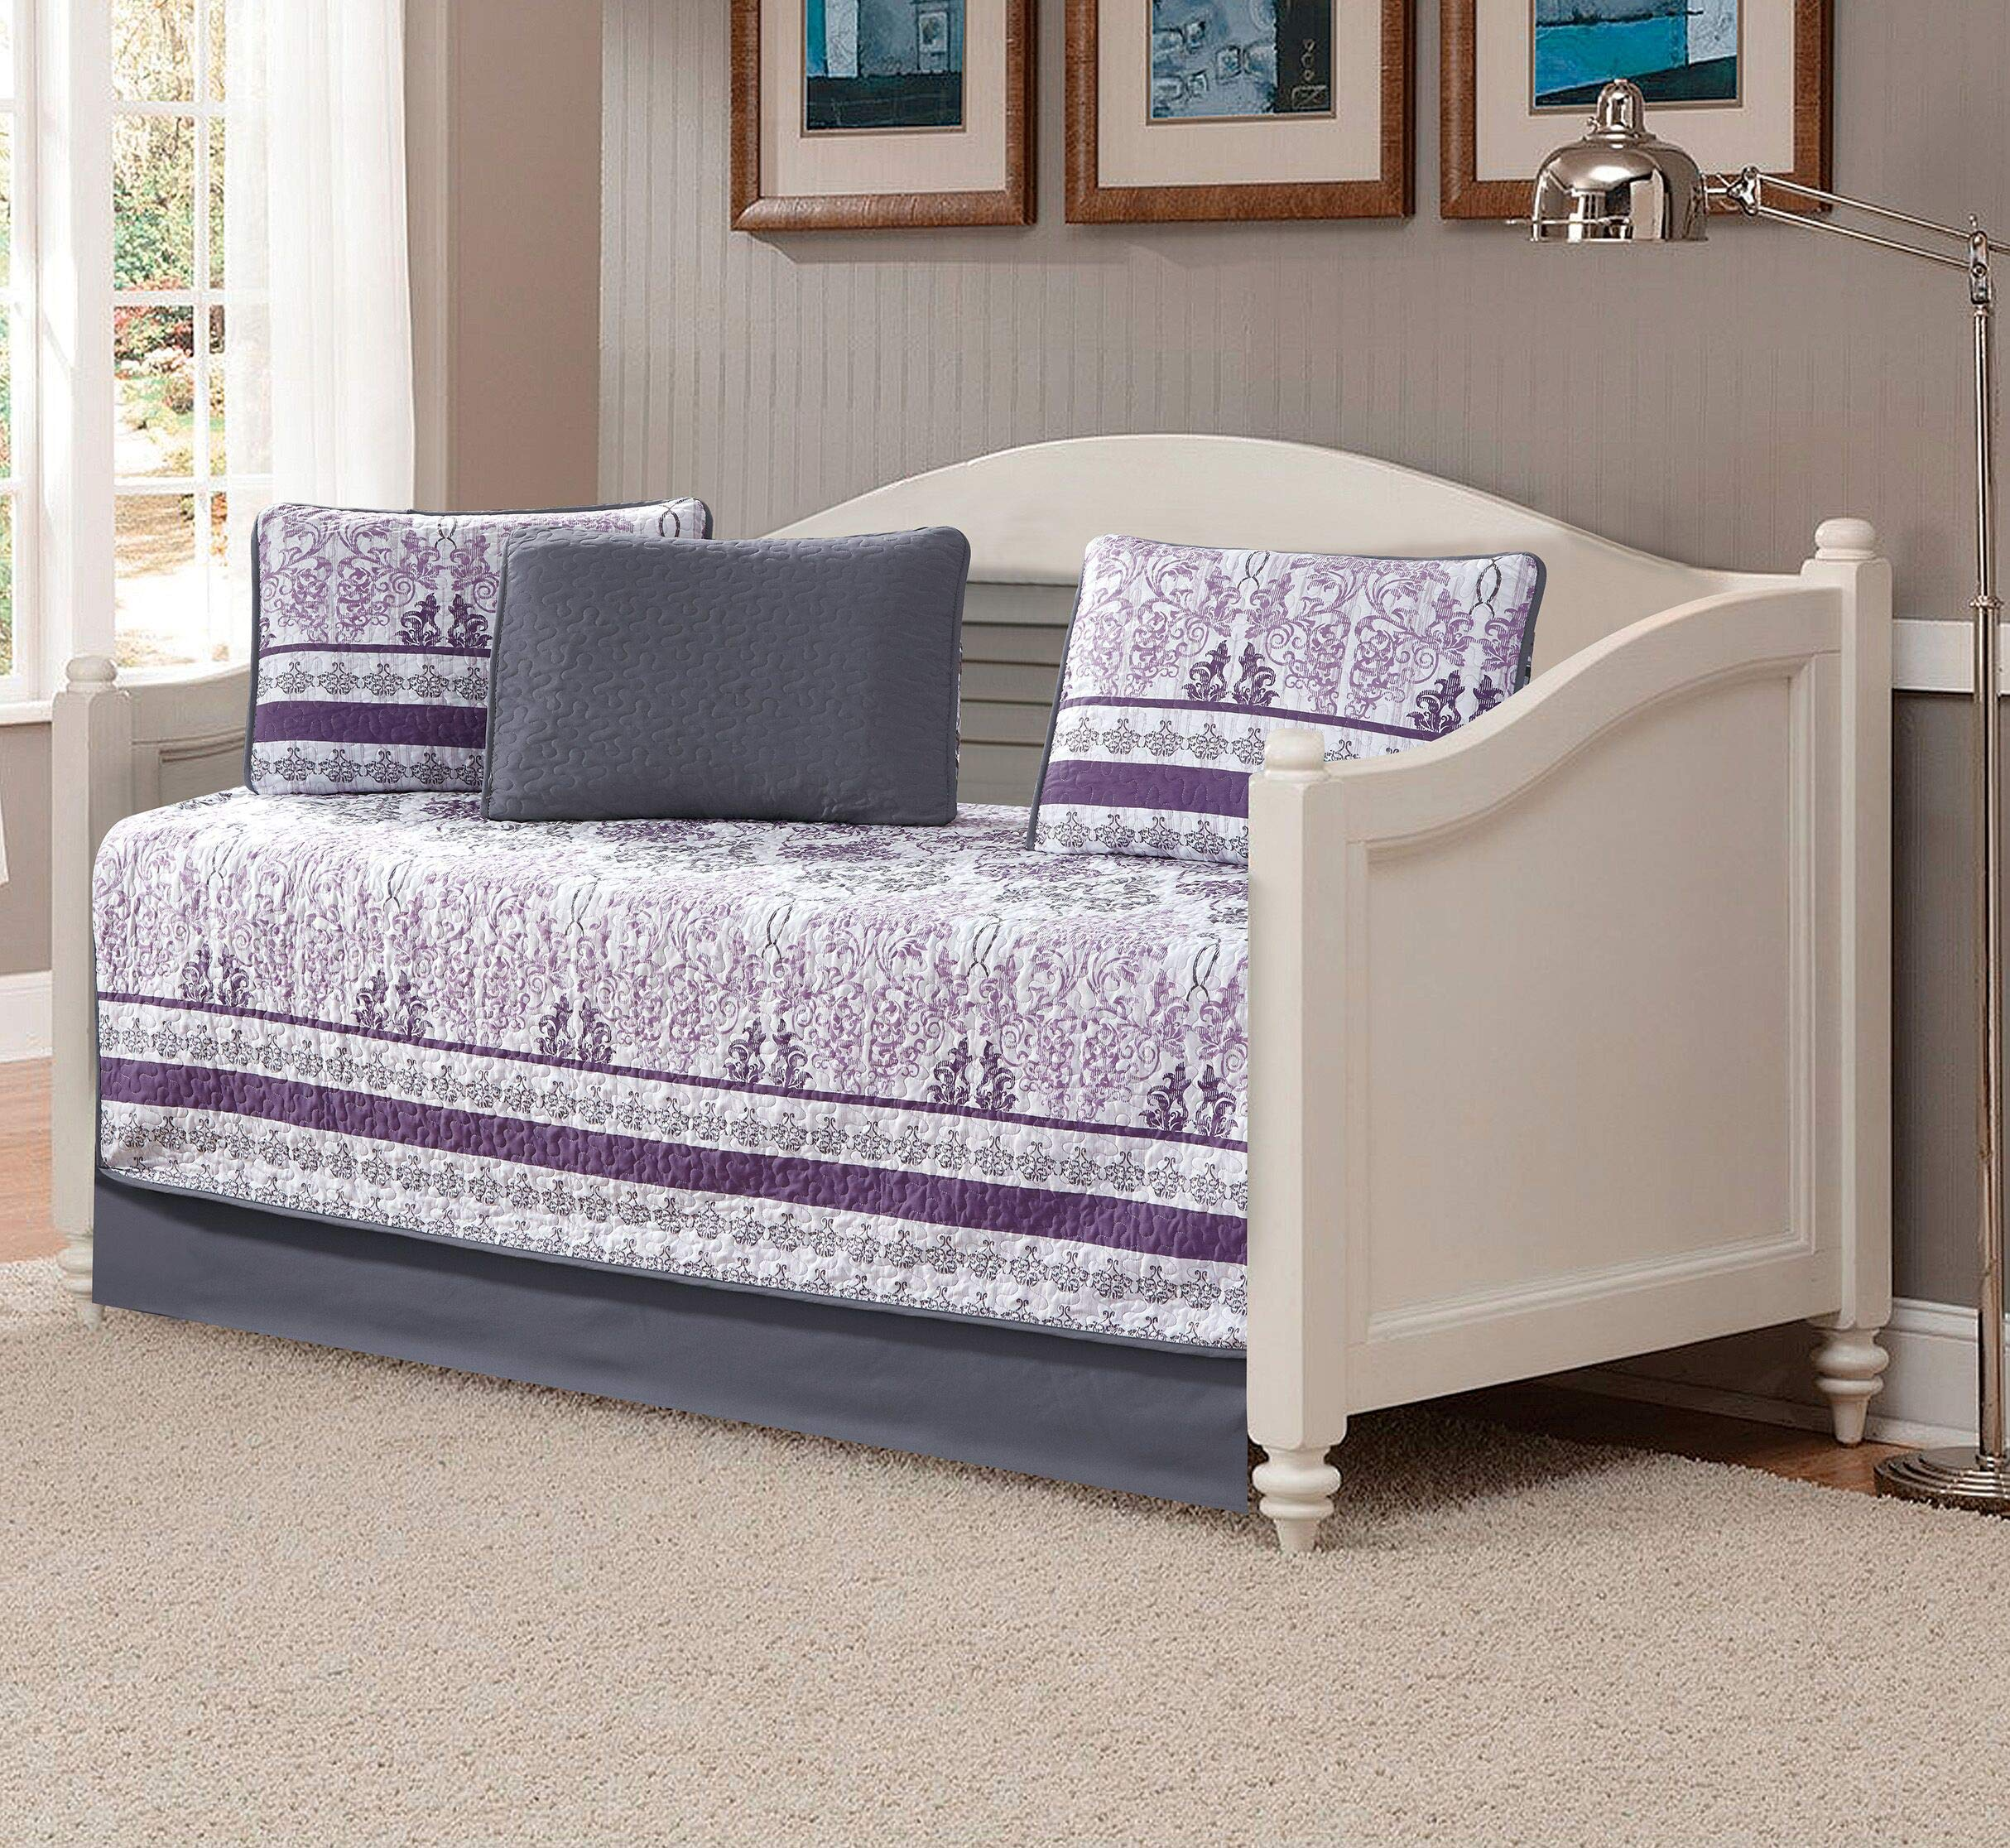 Kids Zone Home Linen 5 Piece Daybed Quilted Bedspread Set Damask Printed Pattern Lavender Purple White Grey by Kids Zone Home Linen